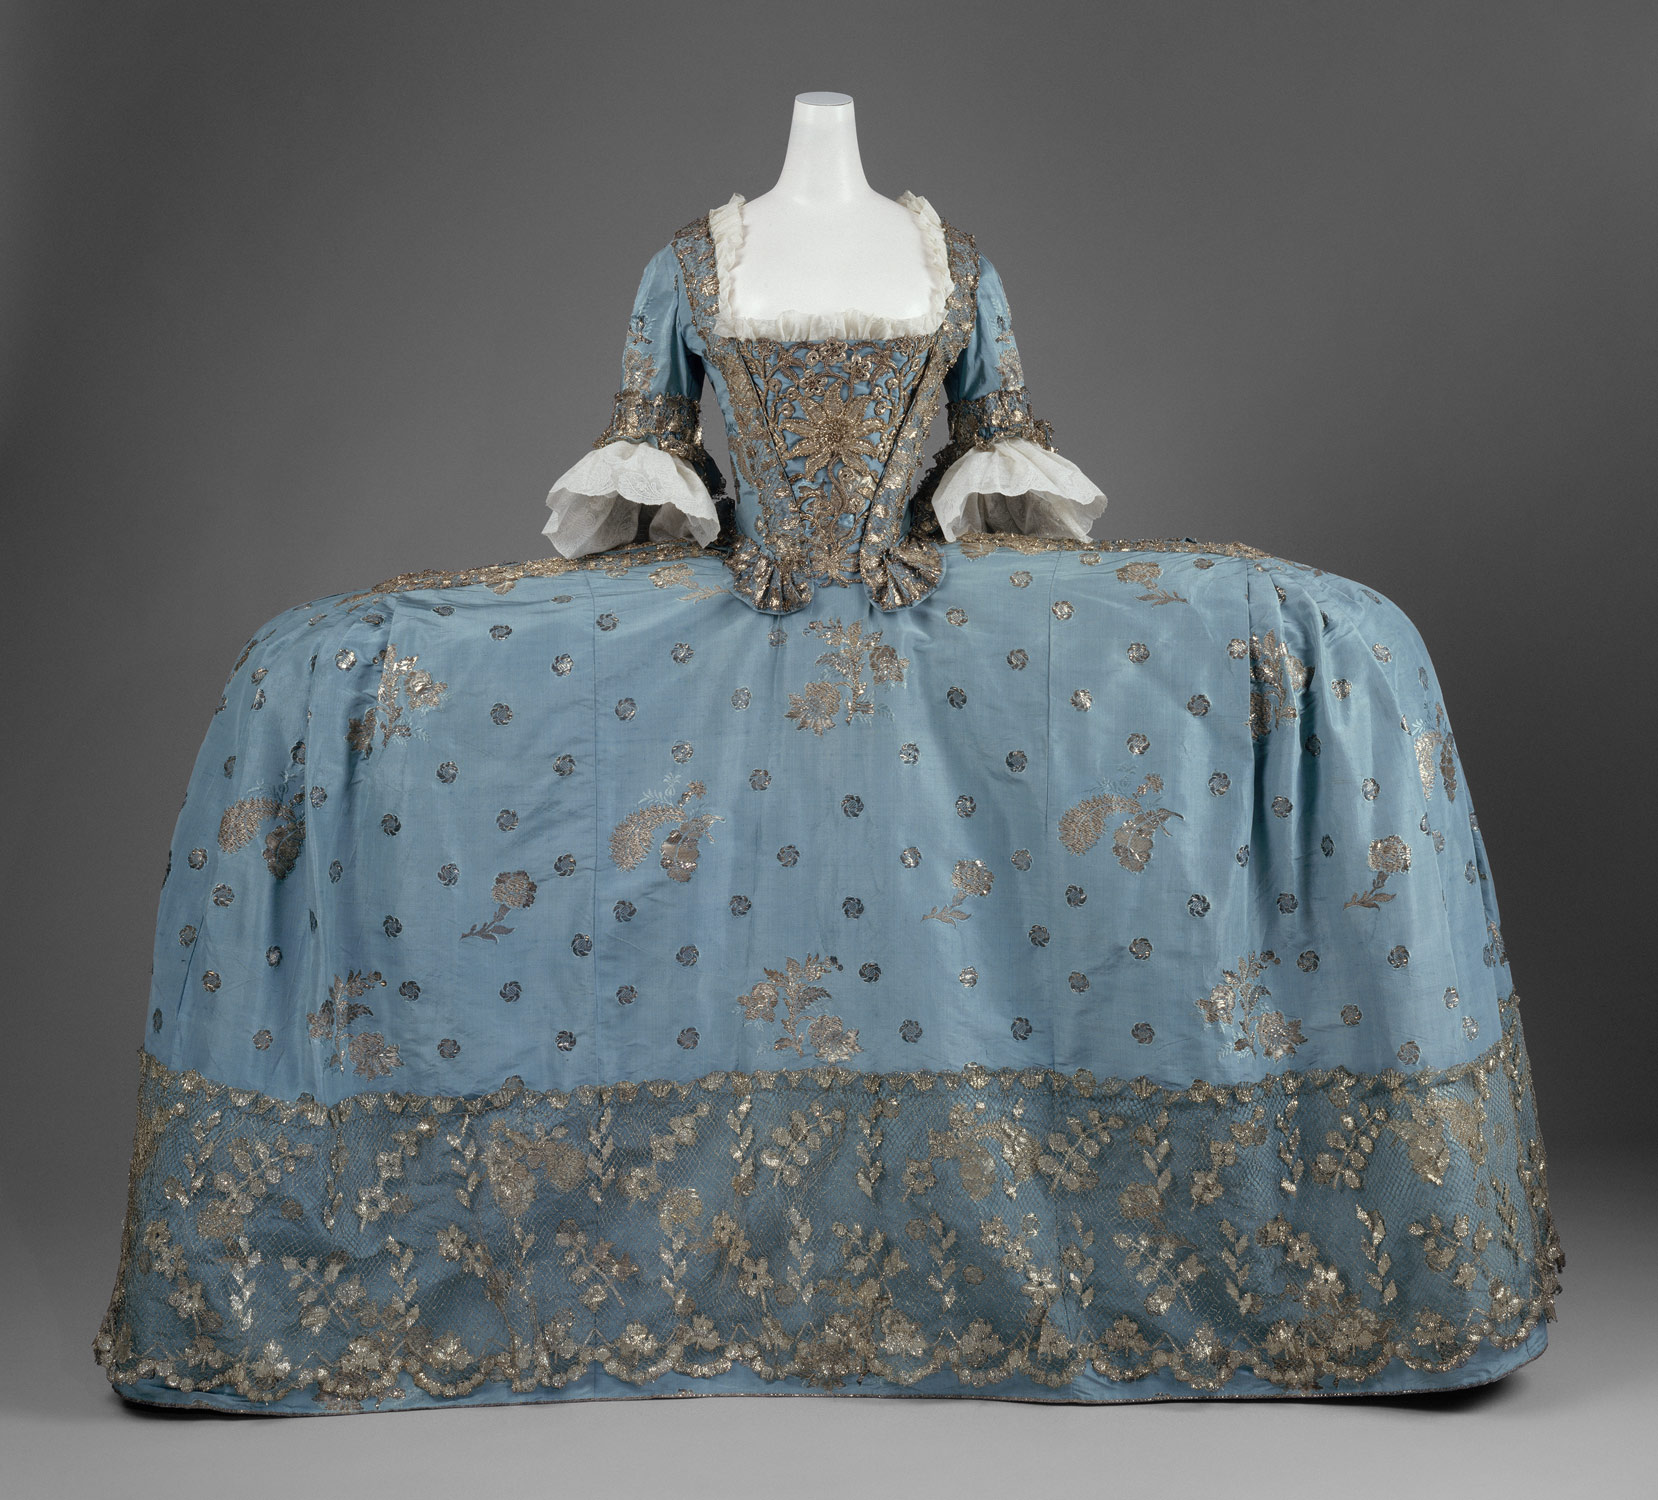 Working Title/Artist: Court dressDepartment: Costume InstituteCulture/Period/Location: HB/TOA Date Code: Working Date: 1750 Court dressca. 1750BritishBlue silk taffeta brocaded with silver threadPurchase, Irene Lewisohn Bequest, 1965 (C.I.65.13.1a–c) photography by mma, Digital File DT11837.tif retouched by film and media (jnc) 9_2_11